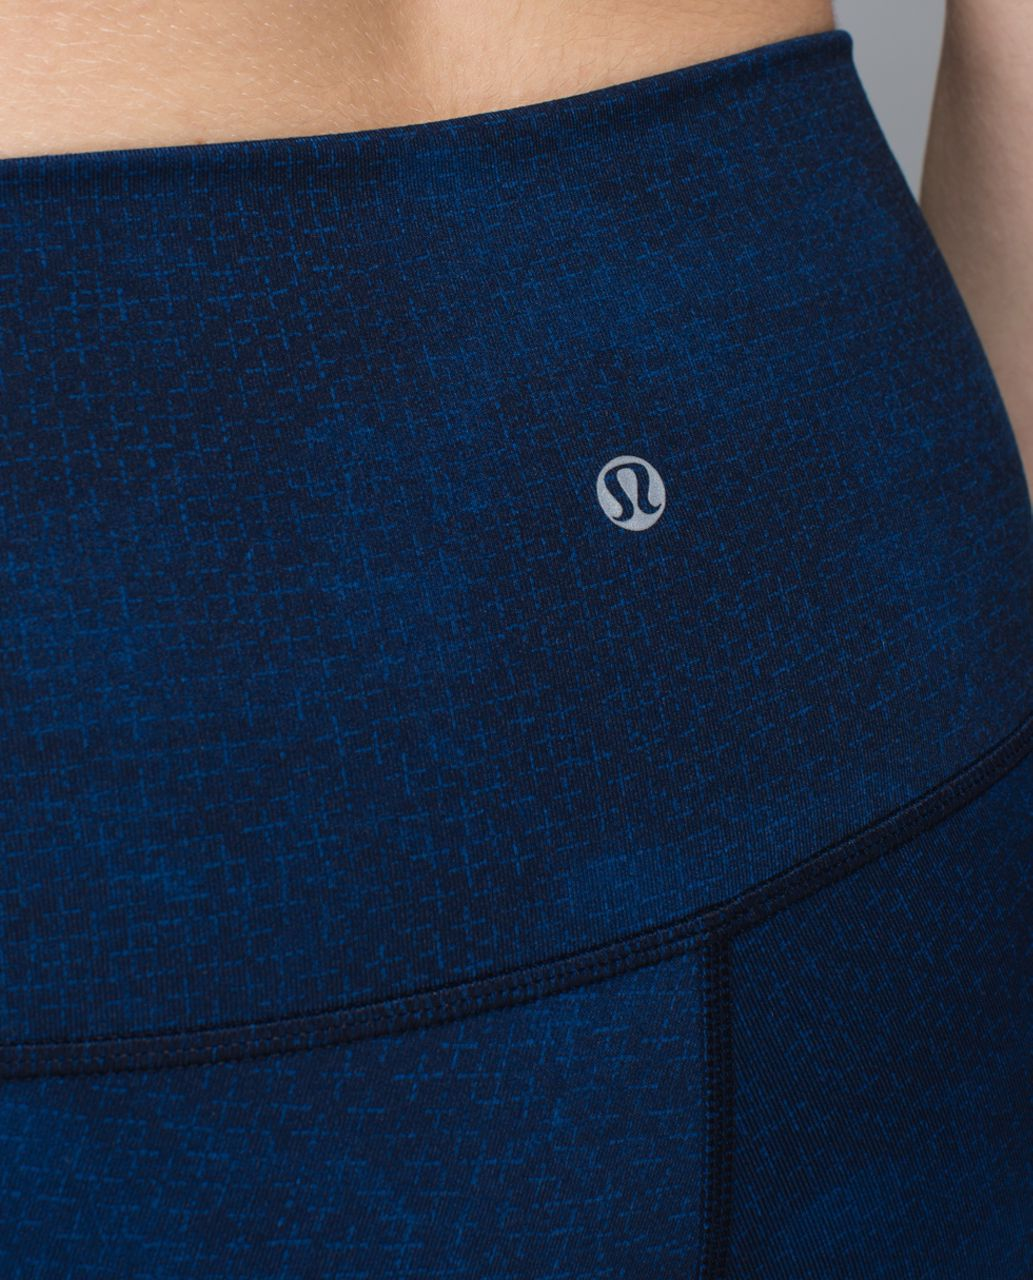 Lululemon Wunder Under Crop II *Print (Roll Down) - Sashico Cross Inkwell Rugged Blue